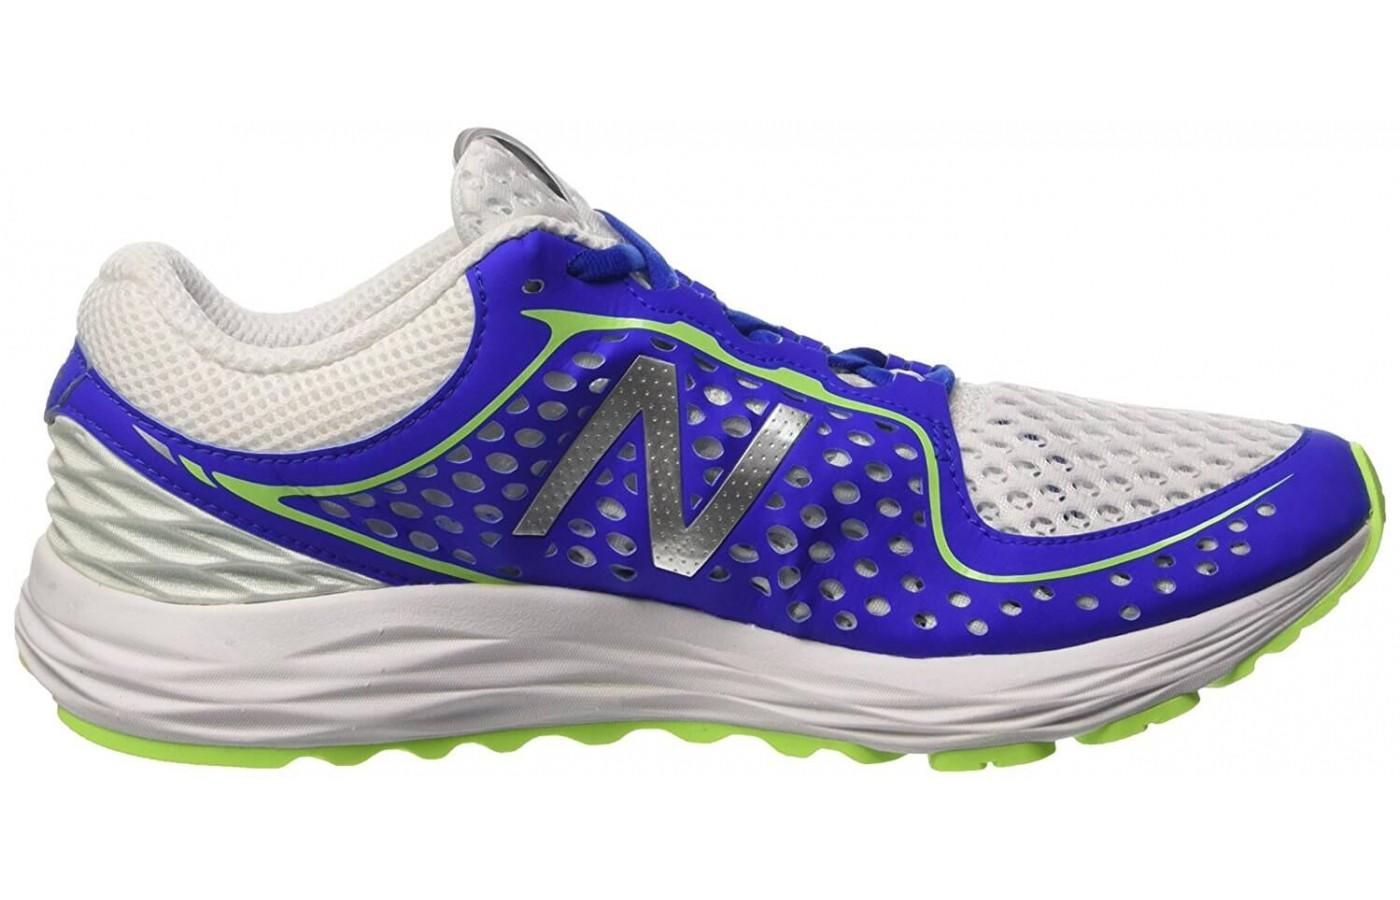 promo code 65a9b ddcf4 New-Balance-Vazee-Breathe-Right-Side-slider1400x900.jpg